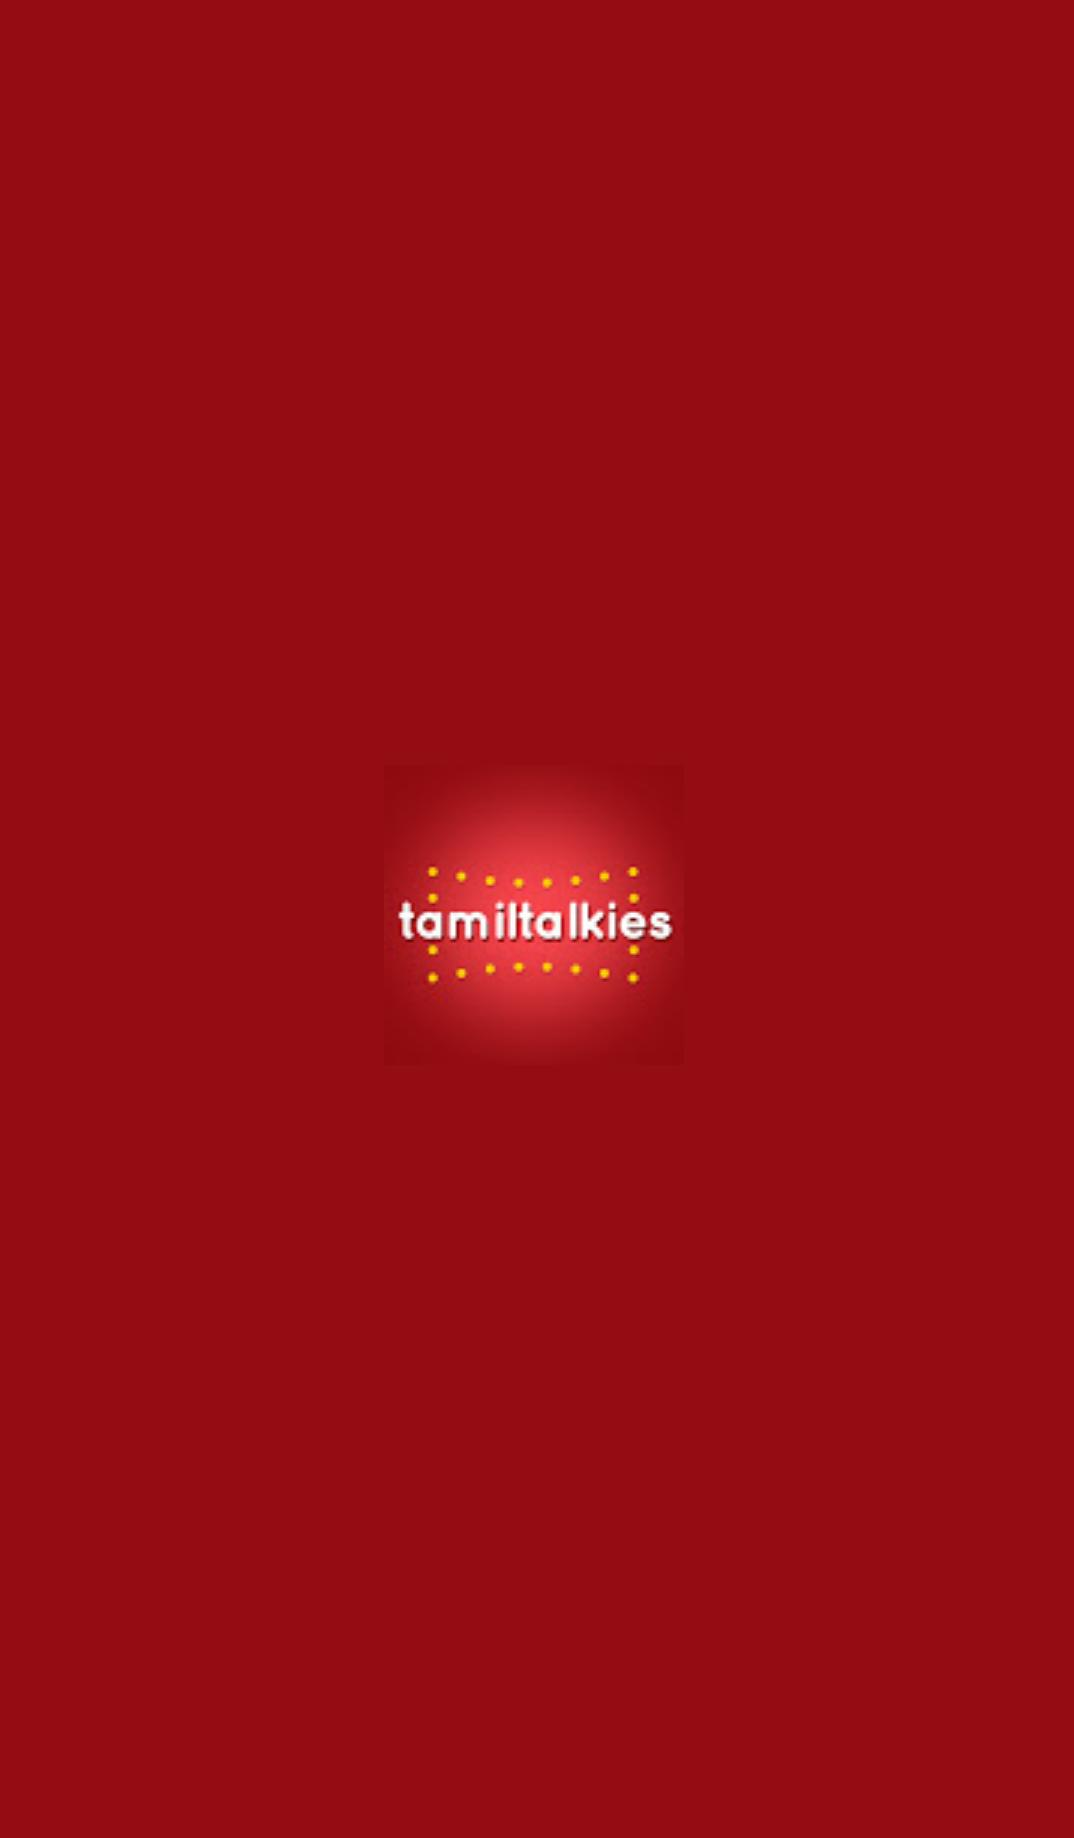 Tamil Talkies | Cinema Reviews for Android - APK Download